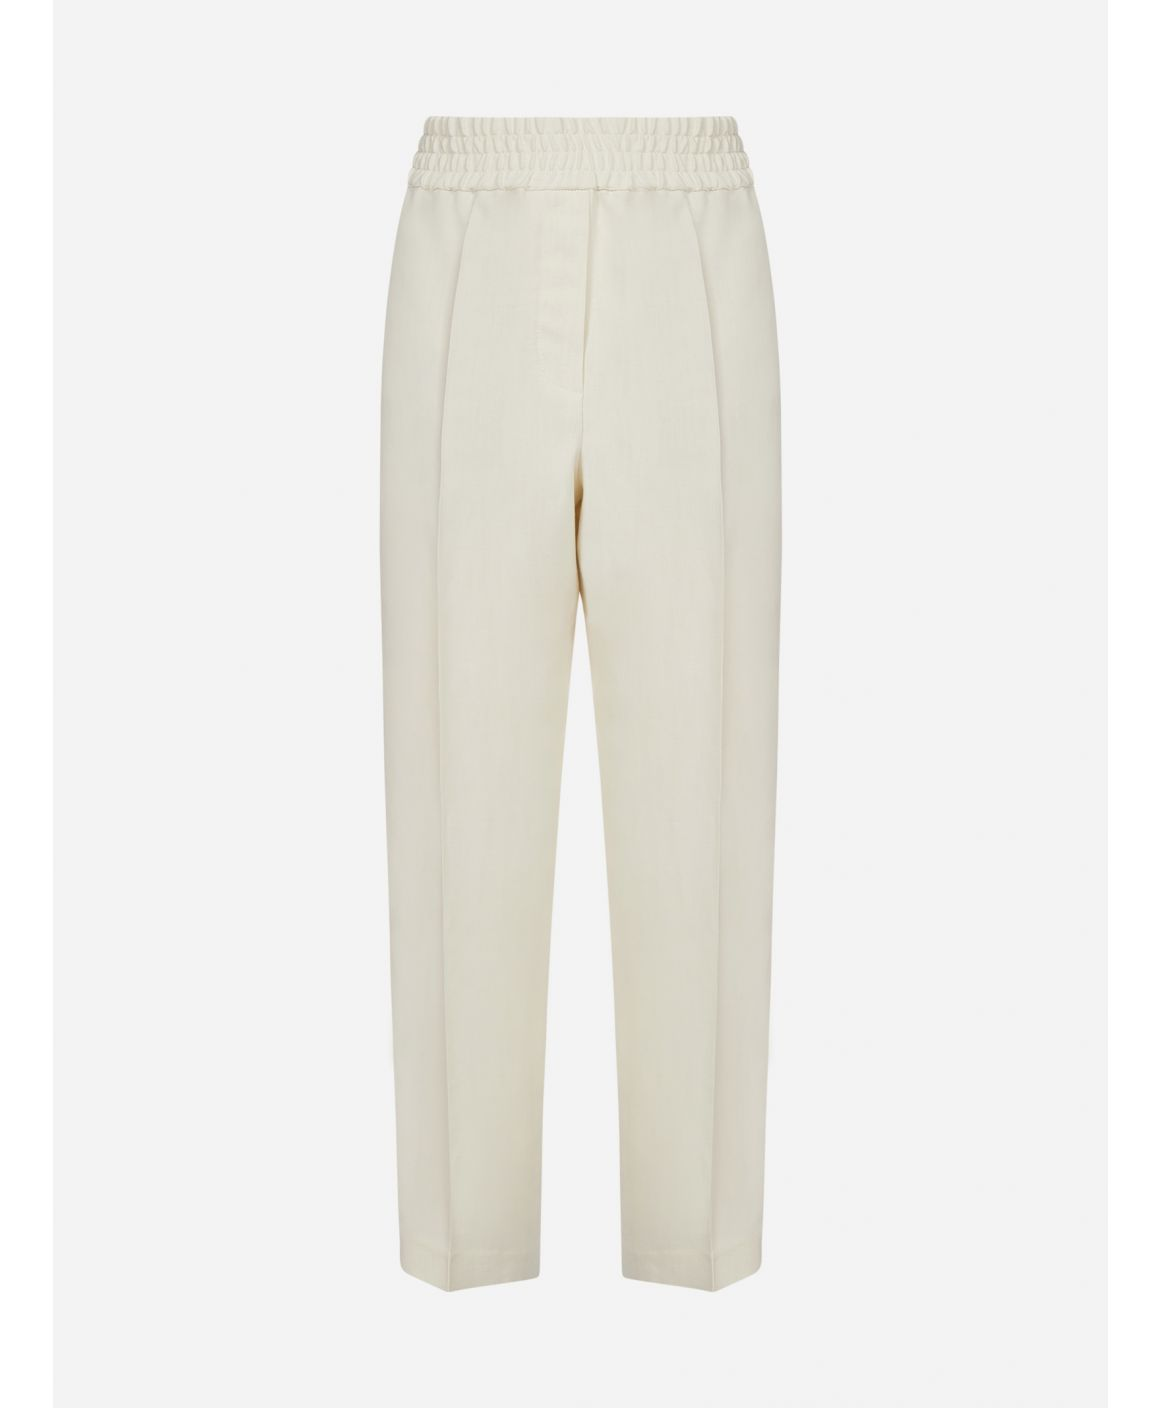 Viscose and linen blend trousers